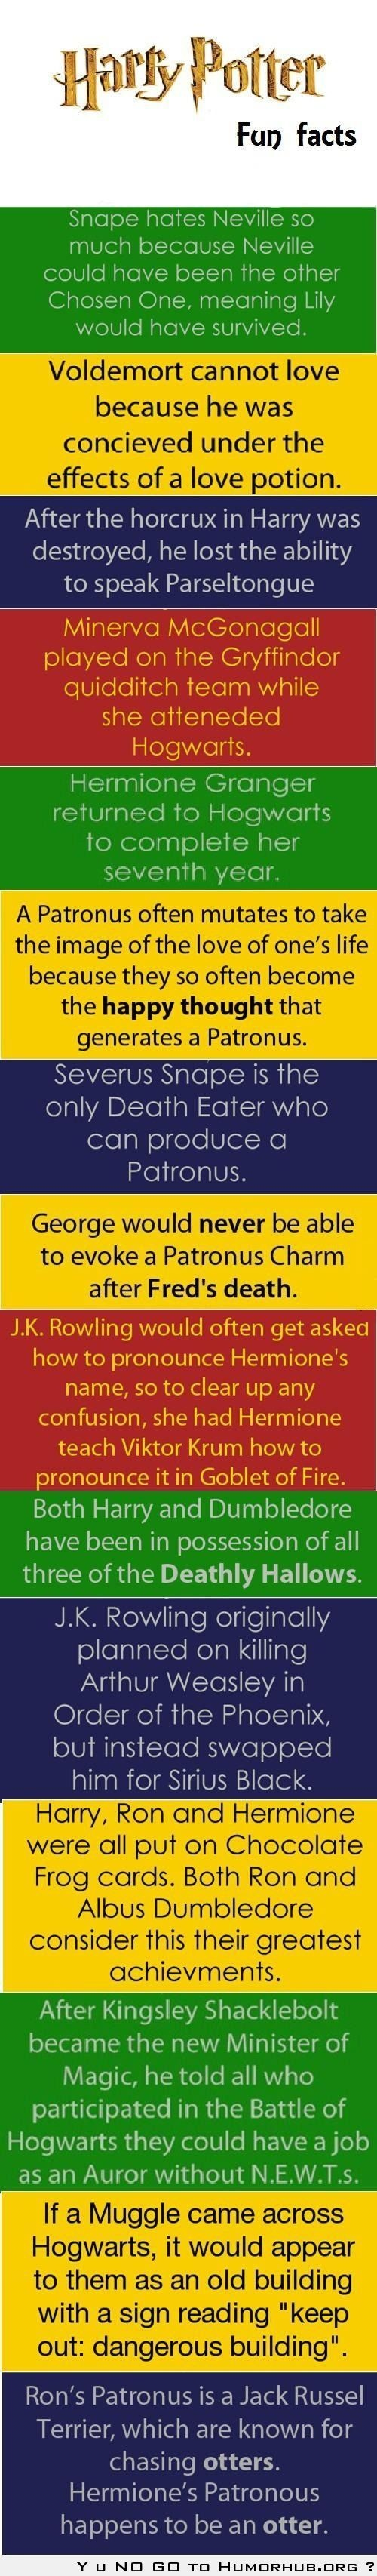 Harry Potter Fun Facts...I dont get it but my daughter will i guess